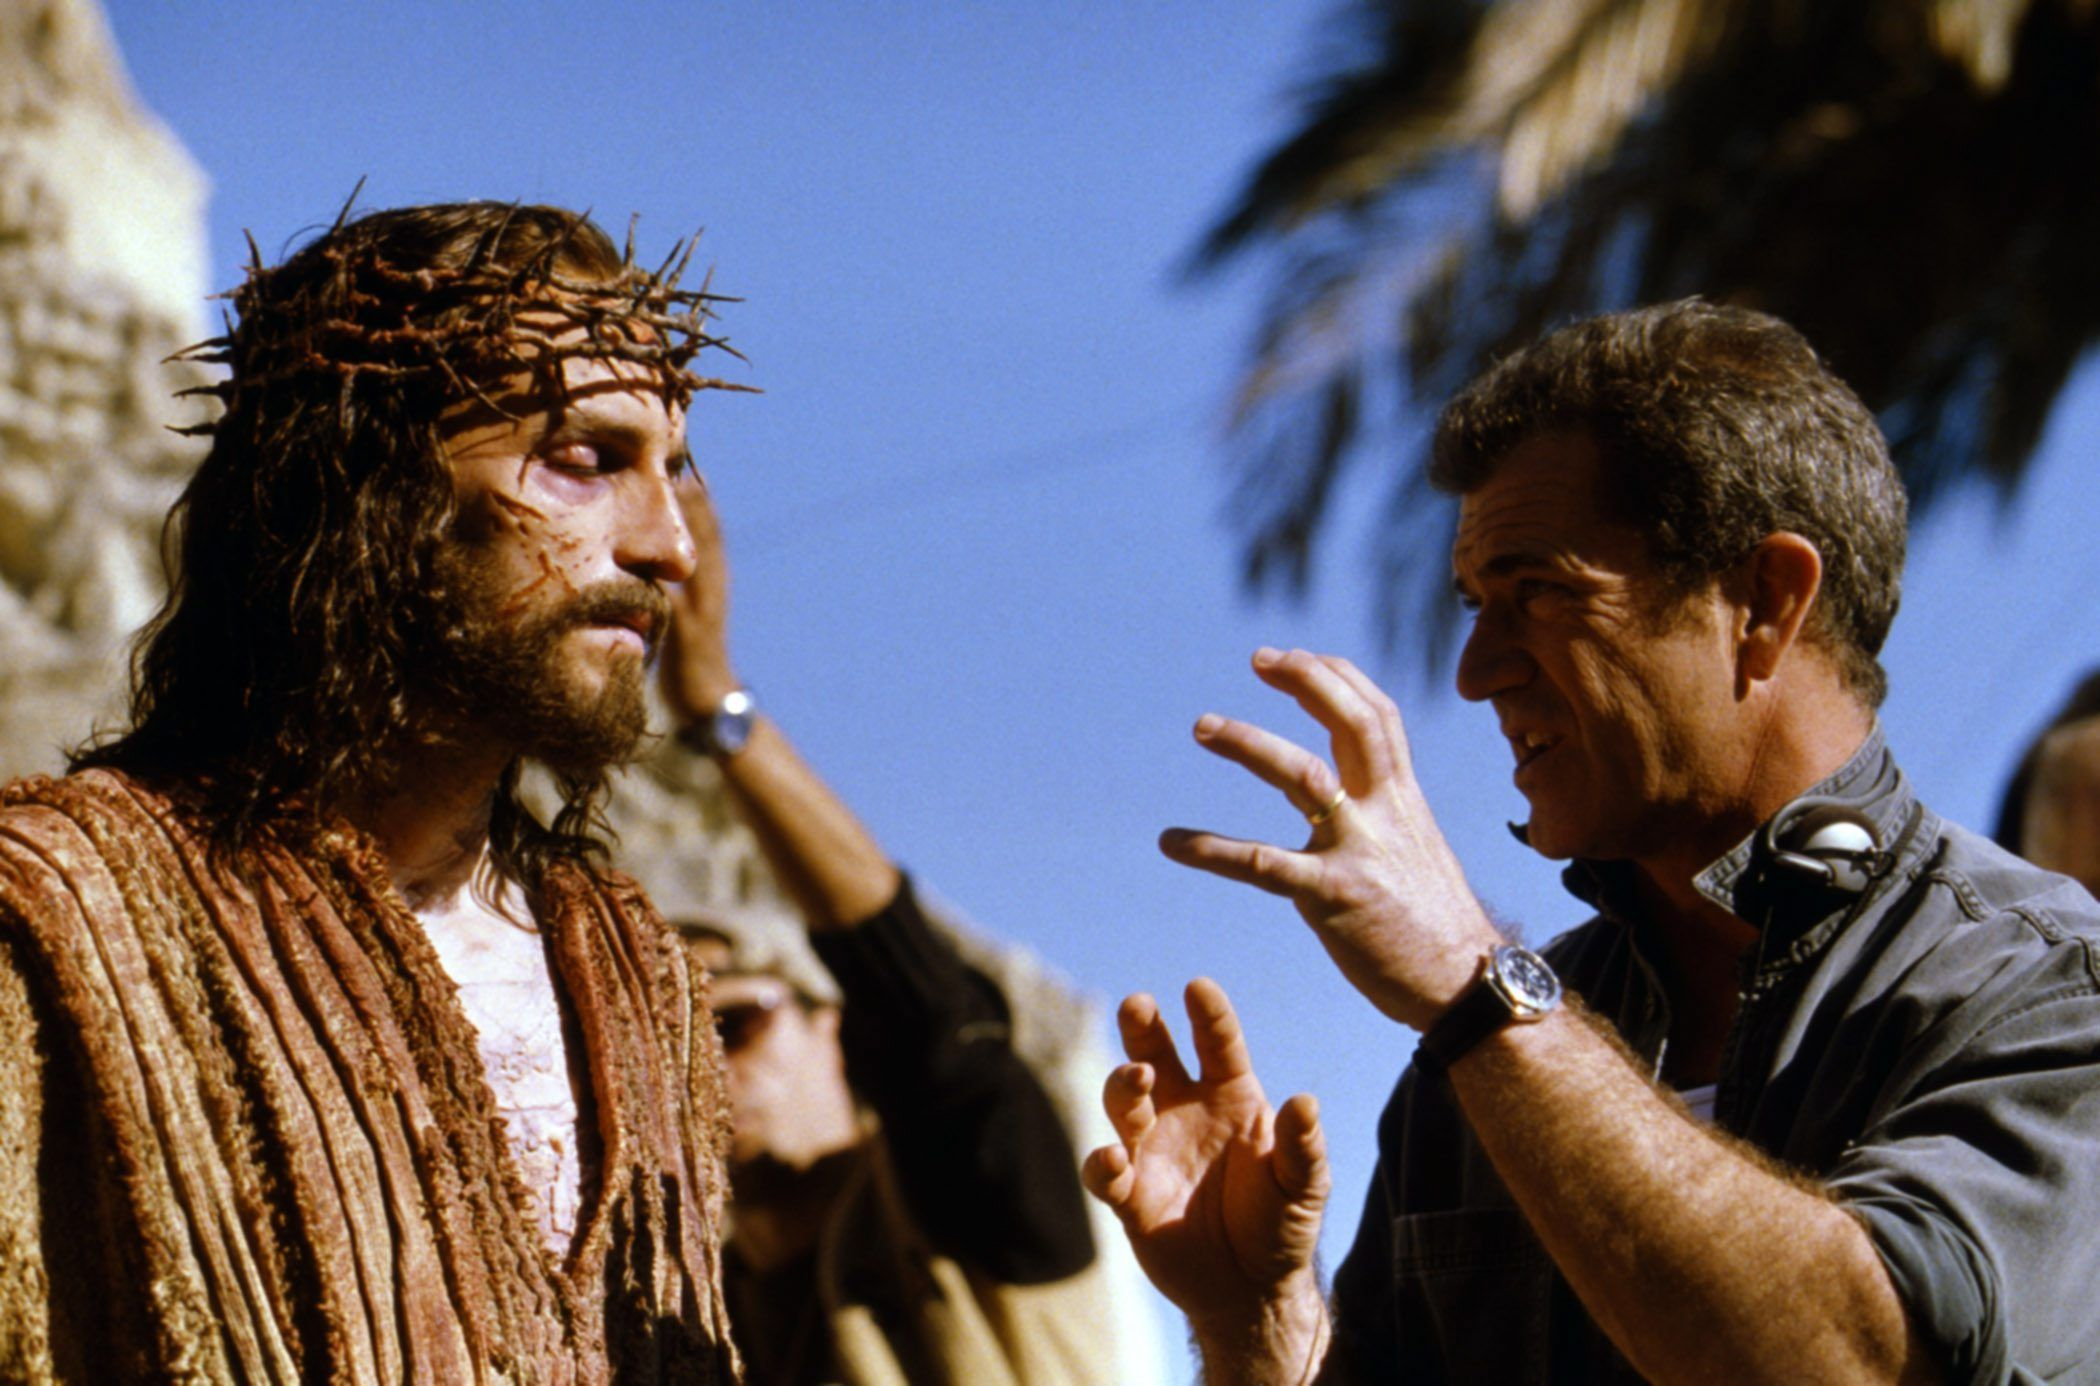 The Passion of the Christ sequel